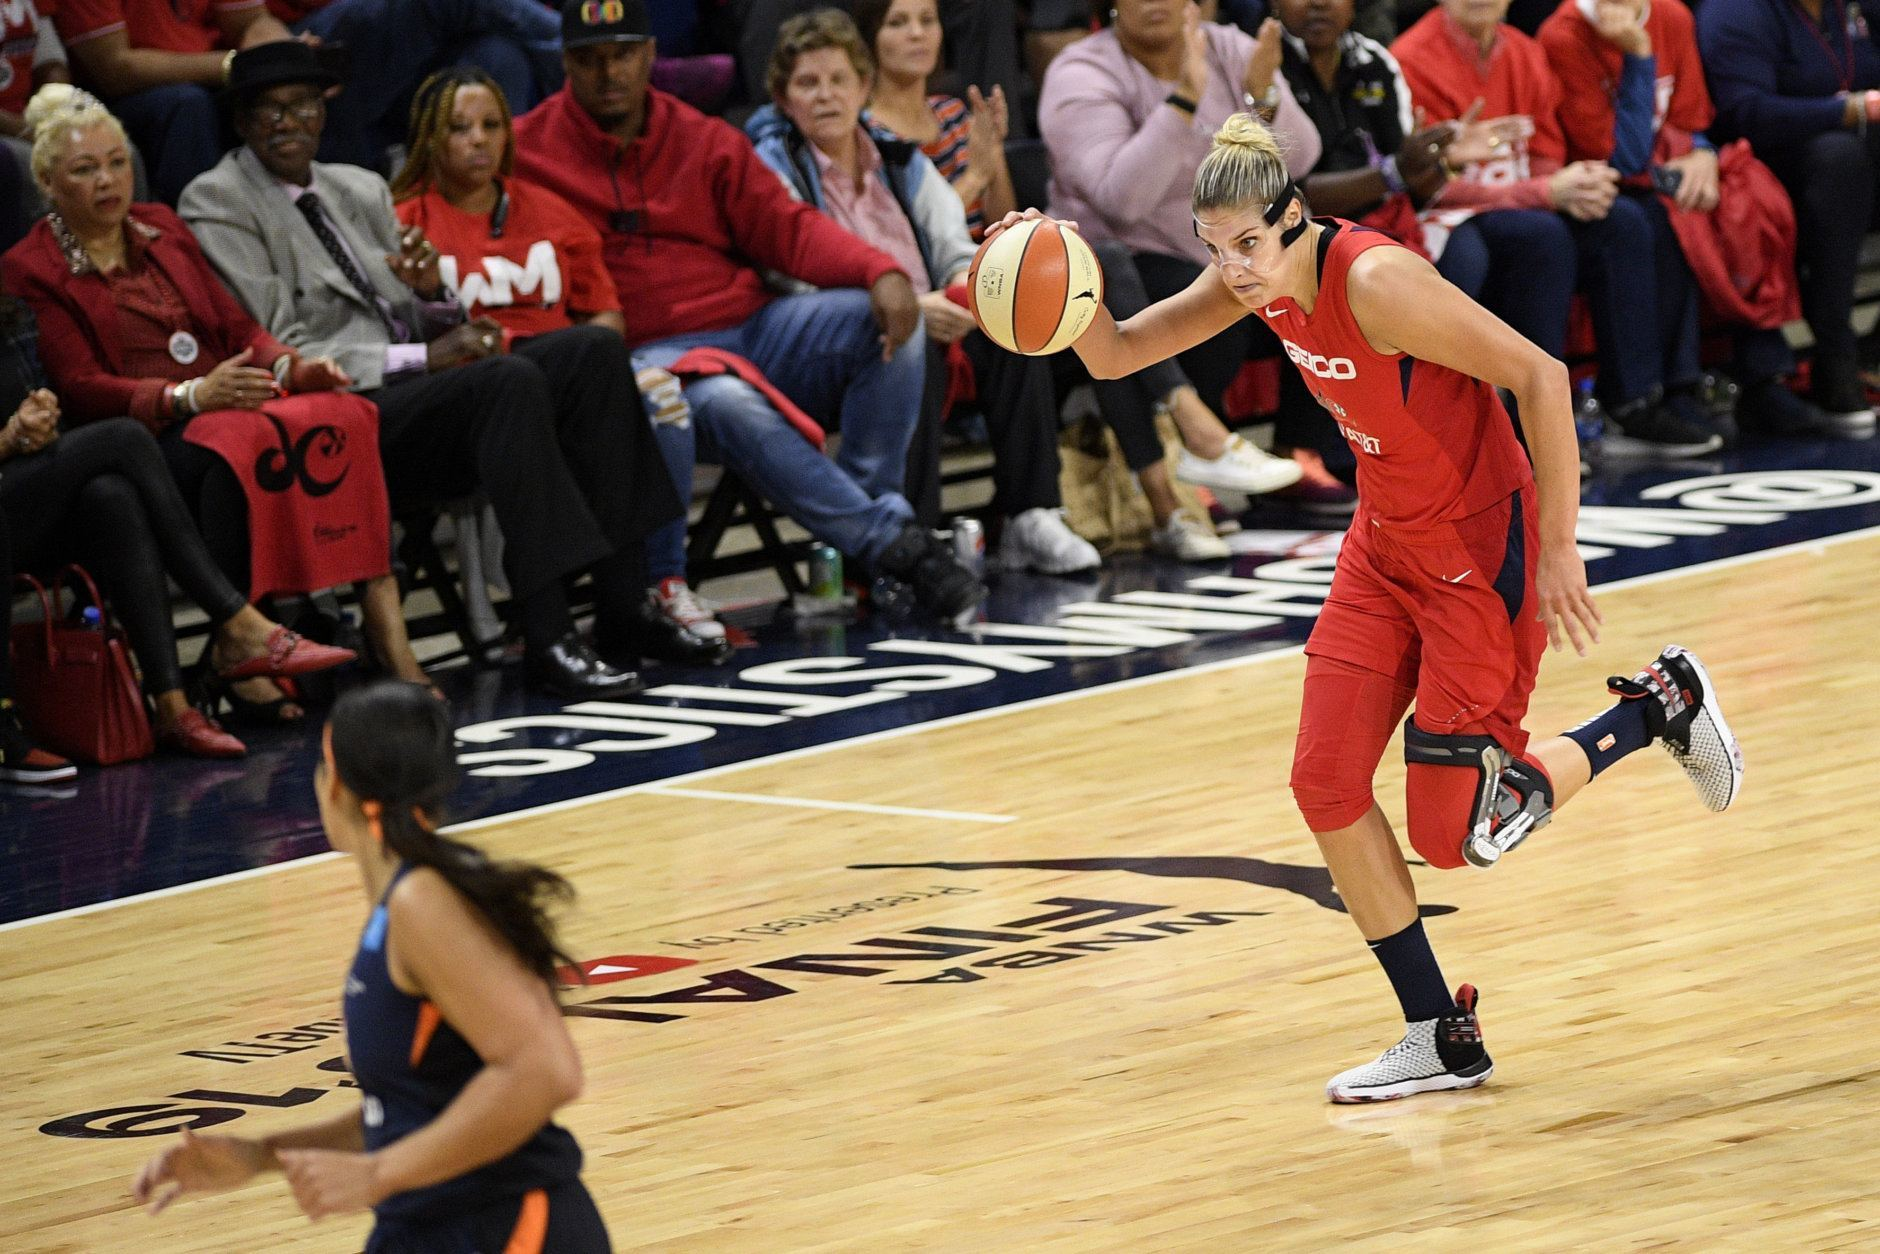 Washington Mystics forward Elena Delle Donne dribbles the ball in the first half of Game 5 of basketball's WNBA Finals against the Connecticut Sun, Thursday, Oct. 10, 2019, in Washington. (AP Photo/Nick Wass)